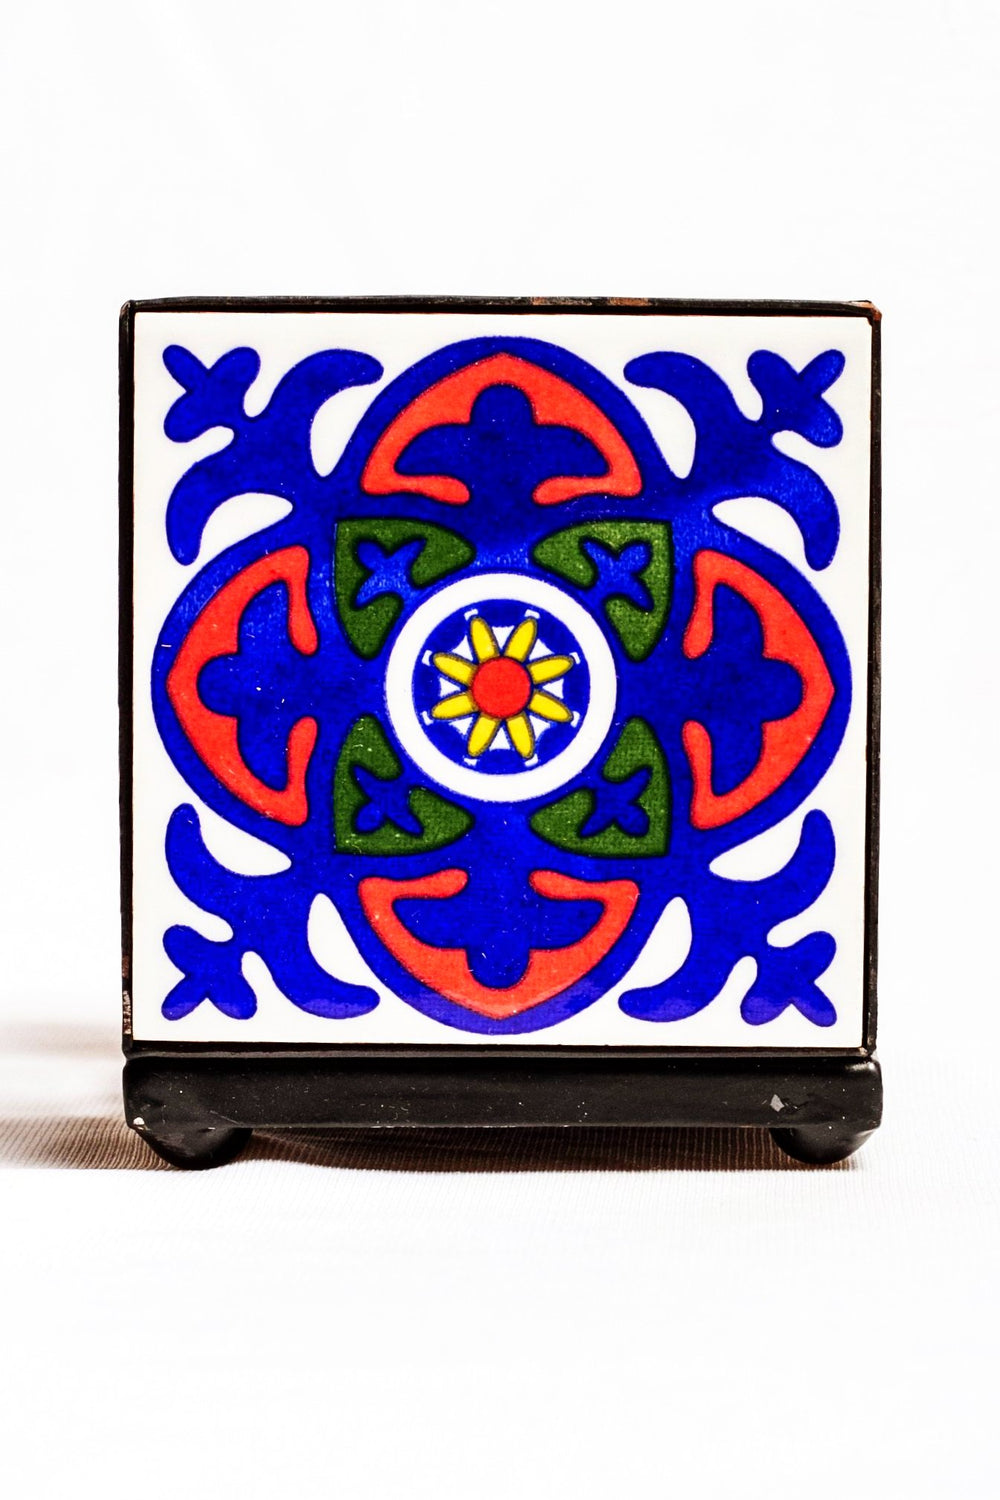 Metal and two ceramic tiled pen holder, white with blue and red floral motif